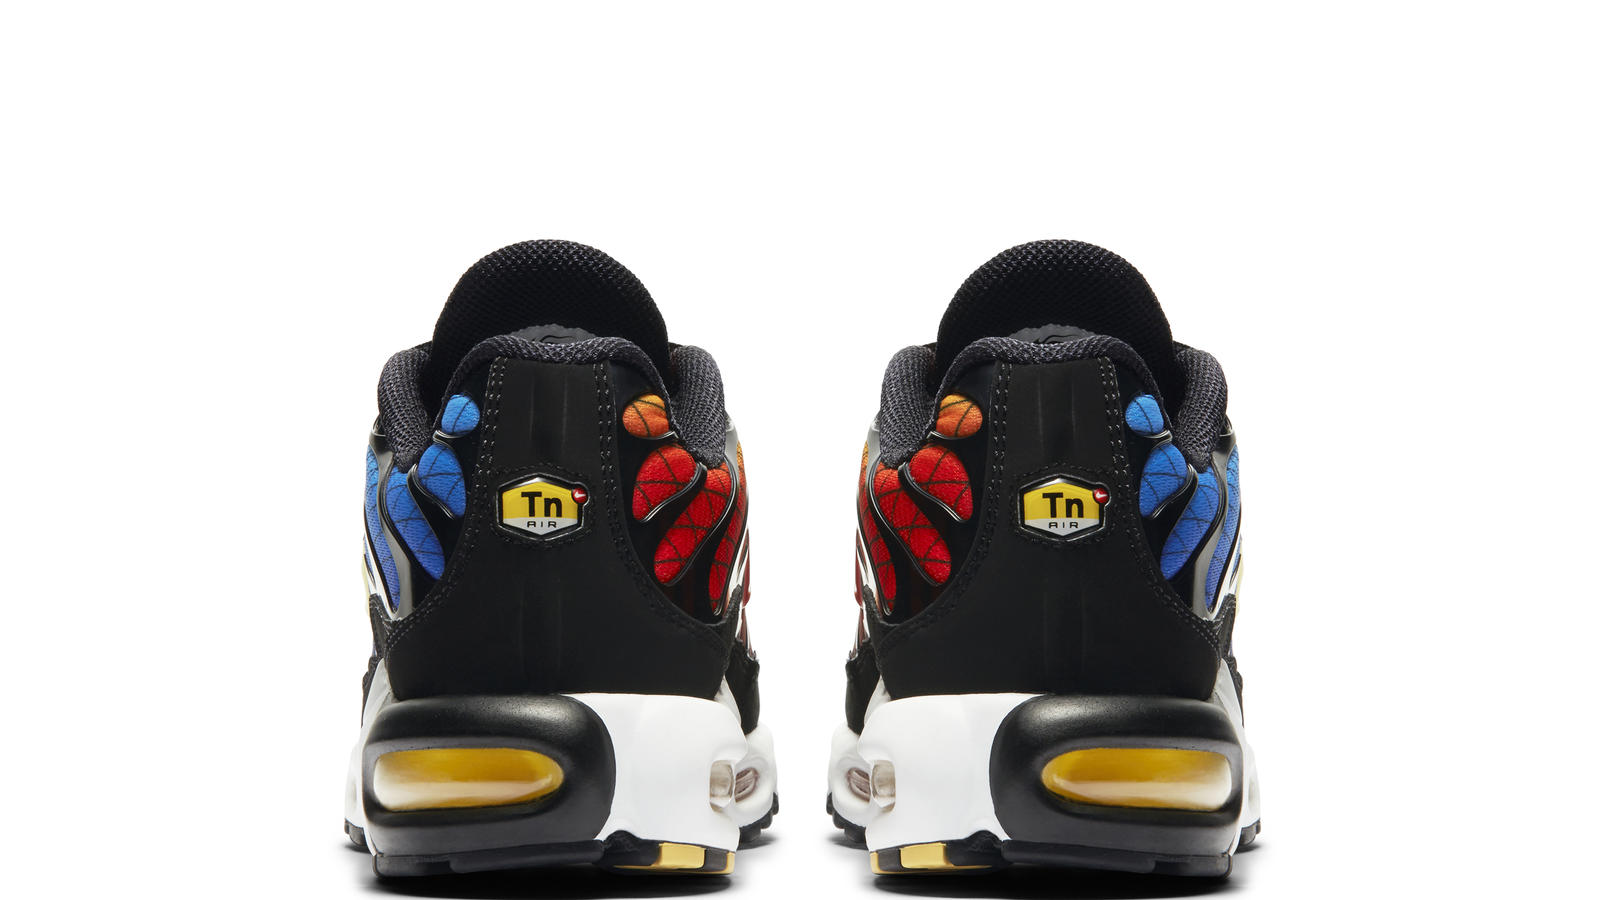 cc3b3ca1d3 Air Max TN Greedy - Nike News